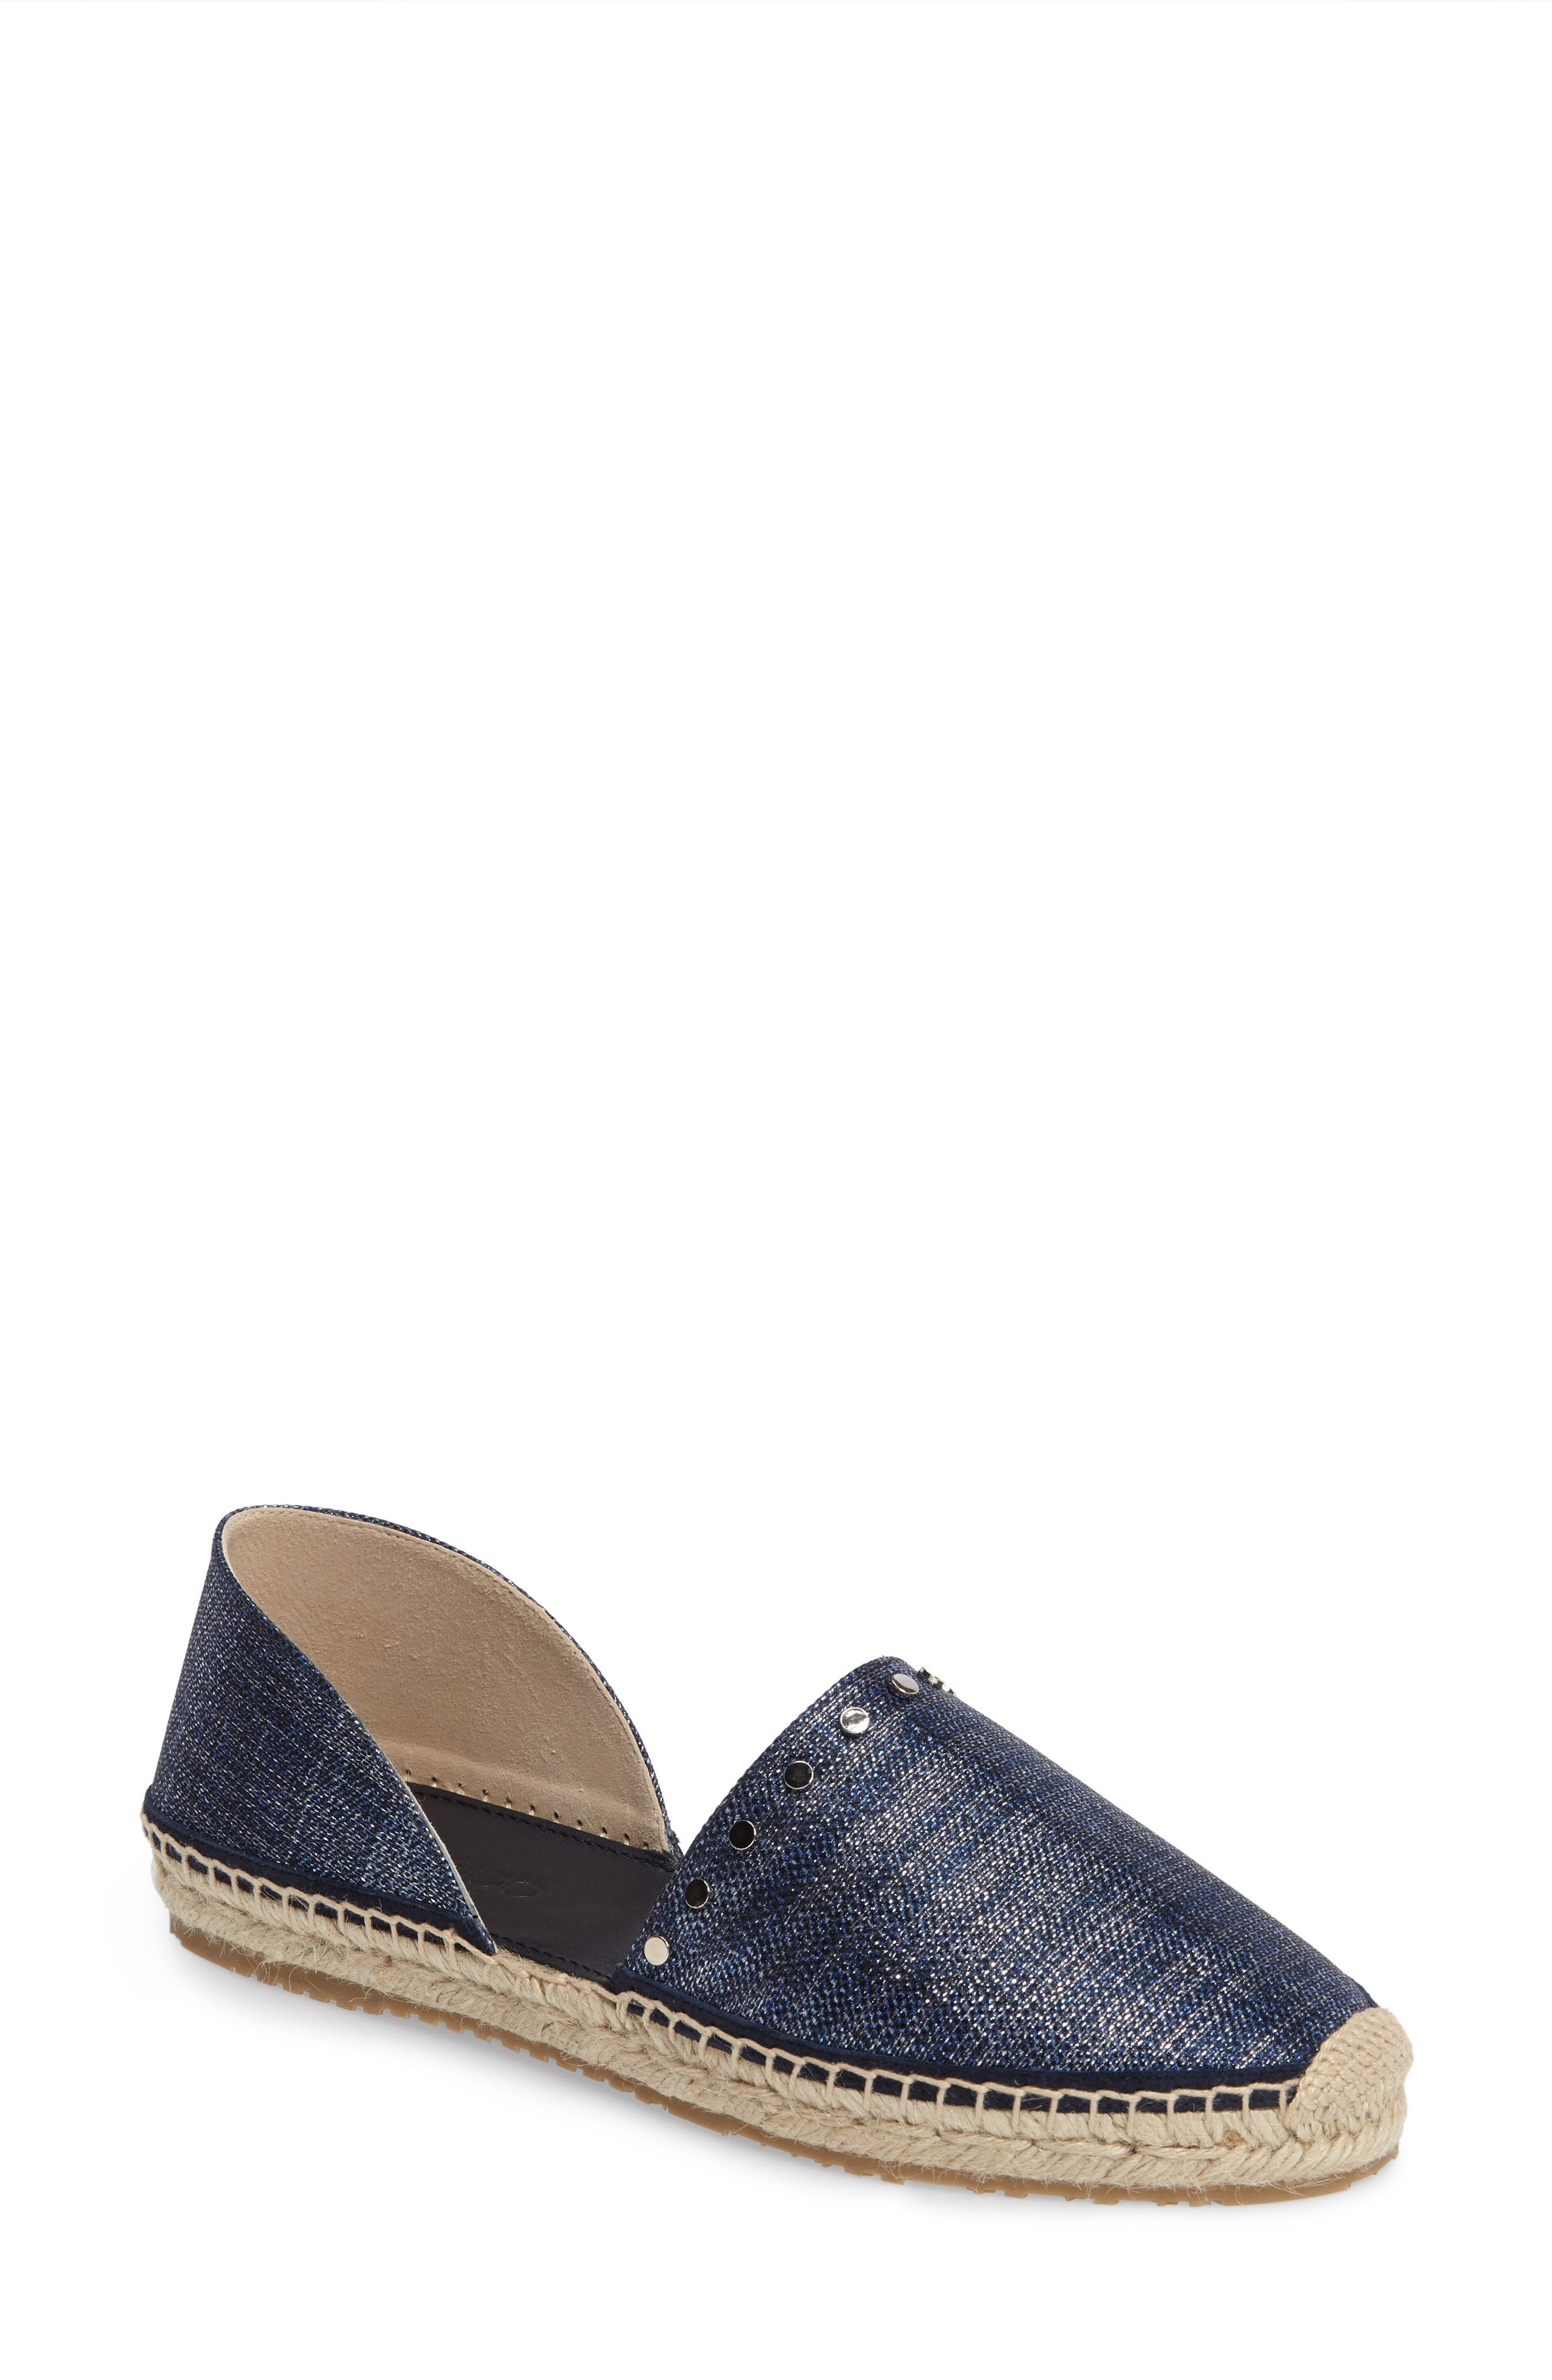 Alternate Image 1 Selected - Jimmy Choo Split Espadrille Flat (Women)